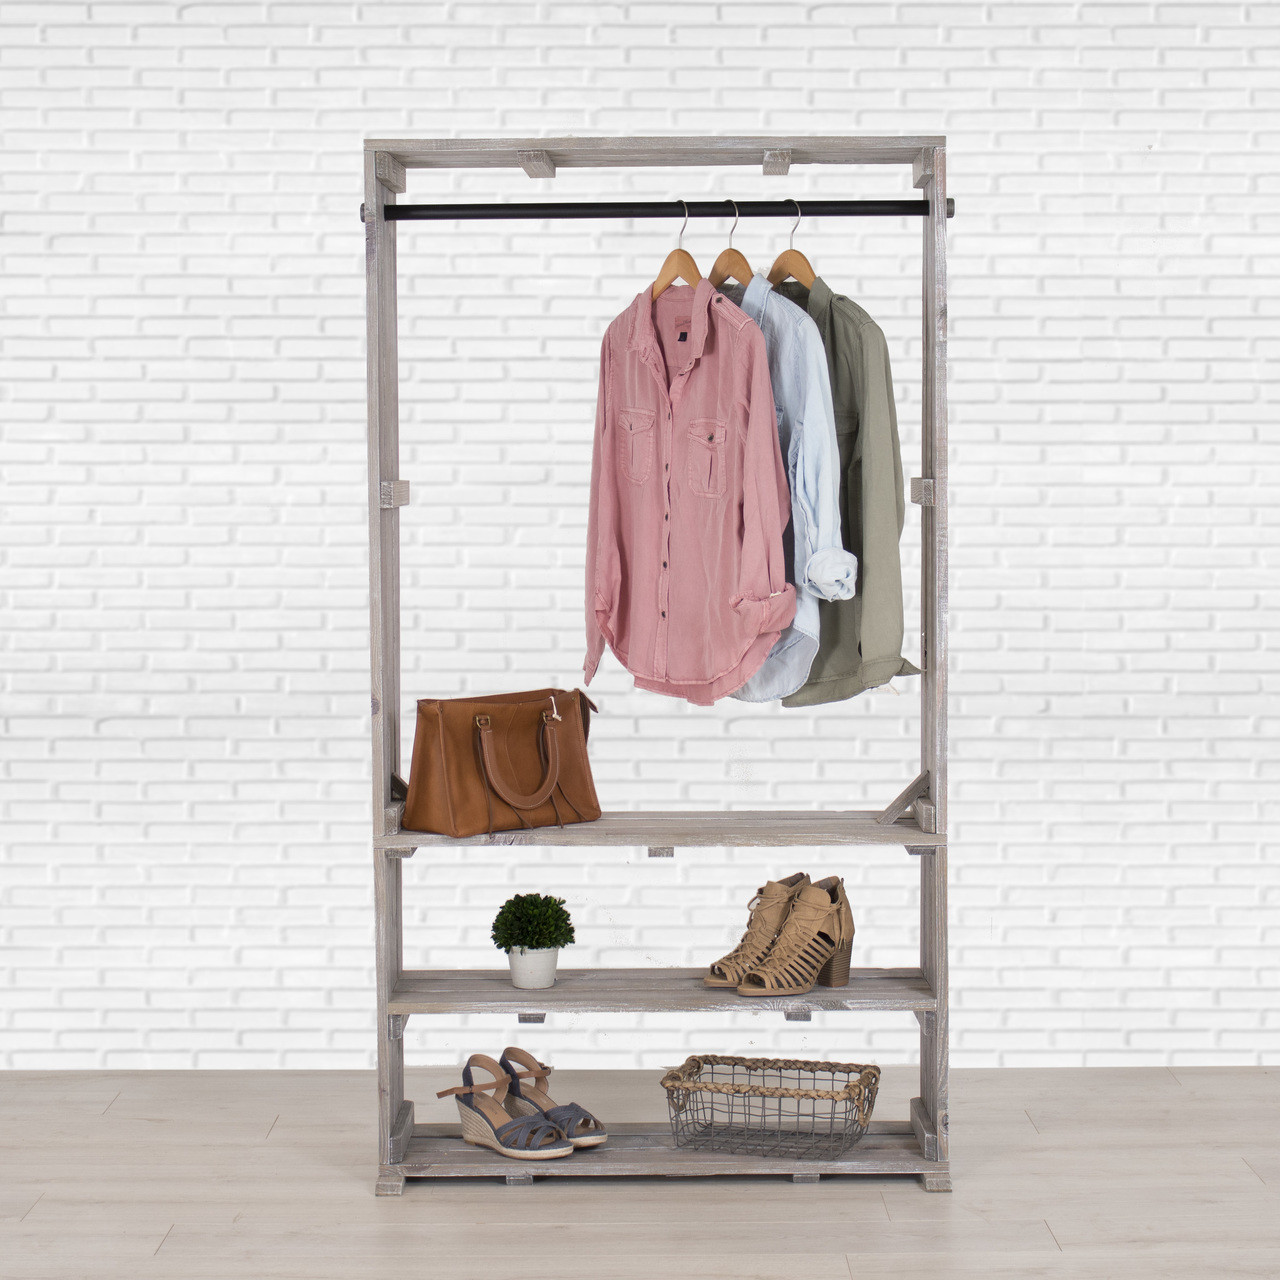 Wooden Clothing Rack With Shelves Free Standing Clothing Storage Closet Organizer Pipe And Wood Clothes Rack Garment And Shoe Stand Distressed